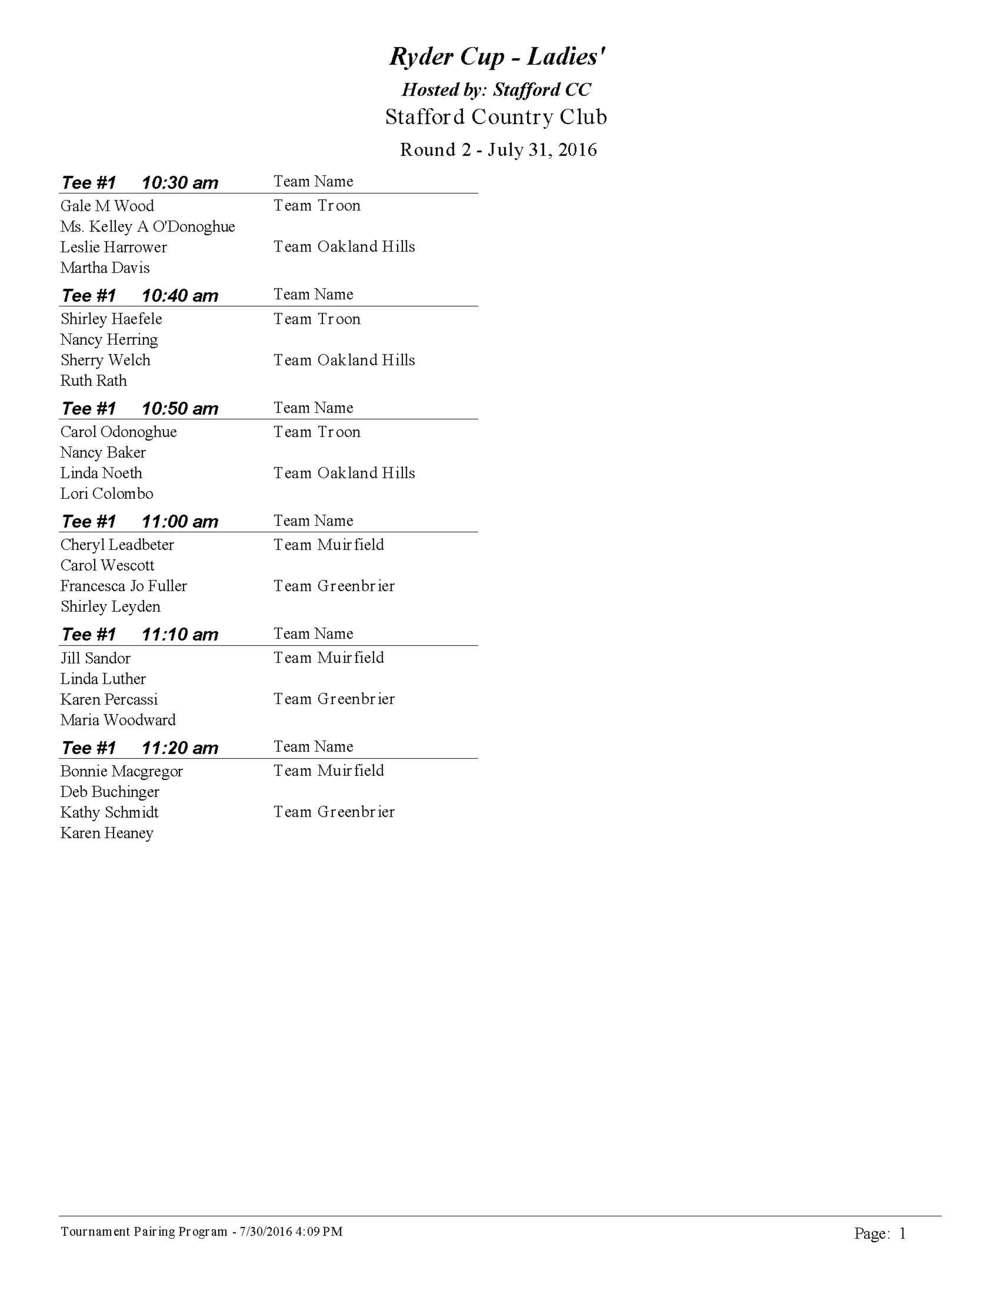 Ryder Cup - Ladies' Division Tee Times Rd. 2